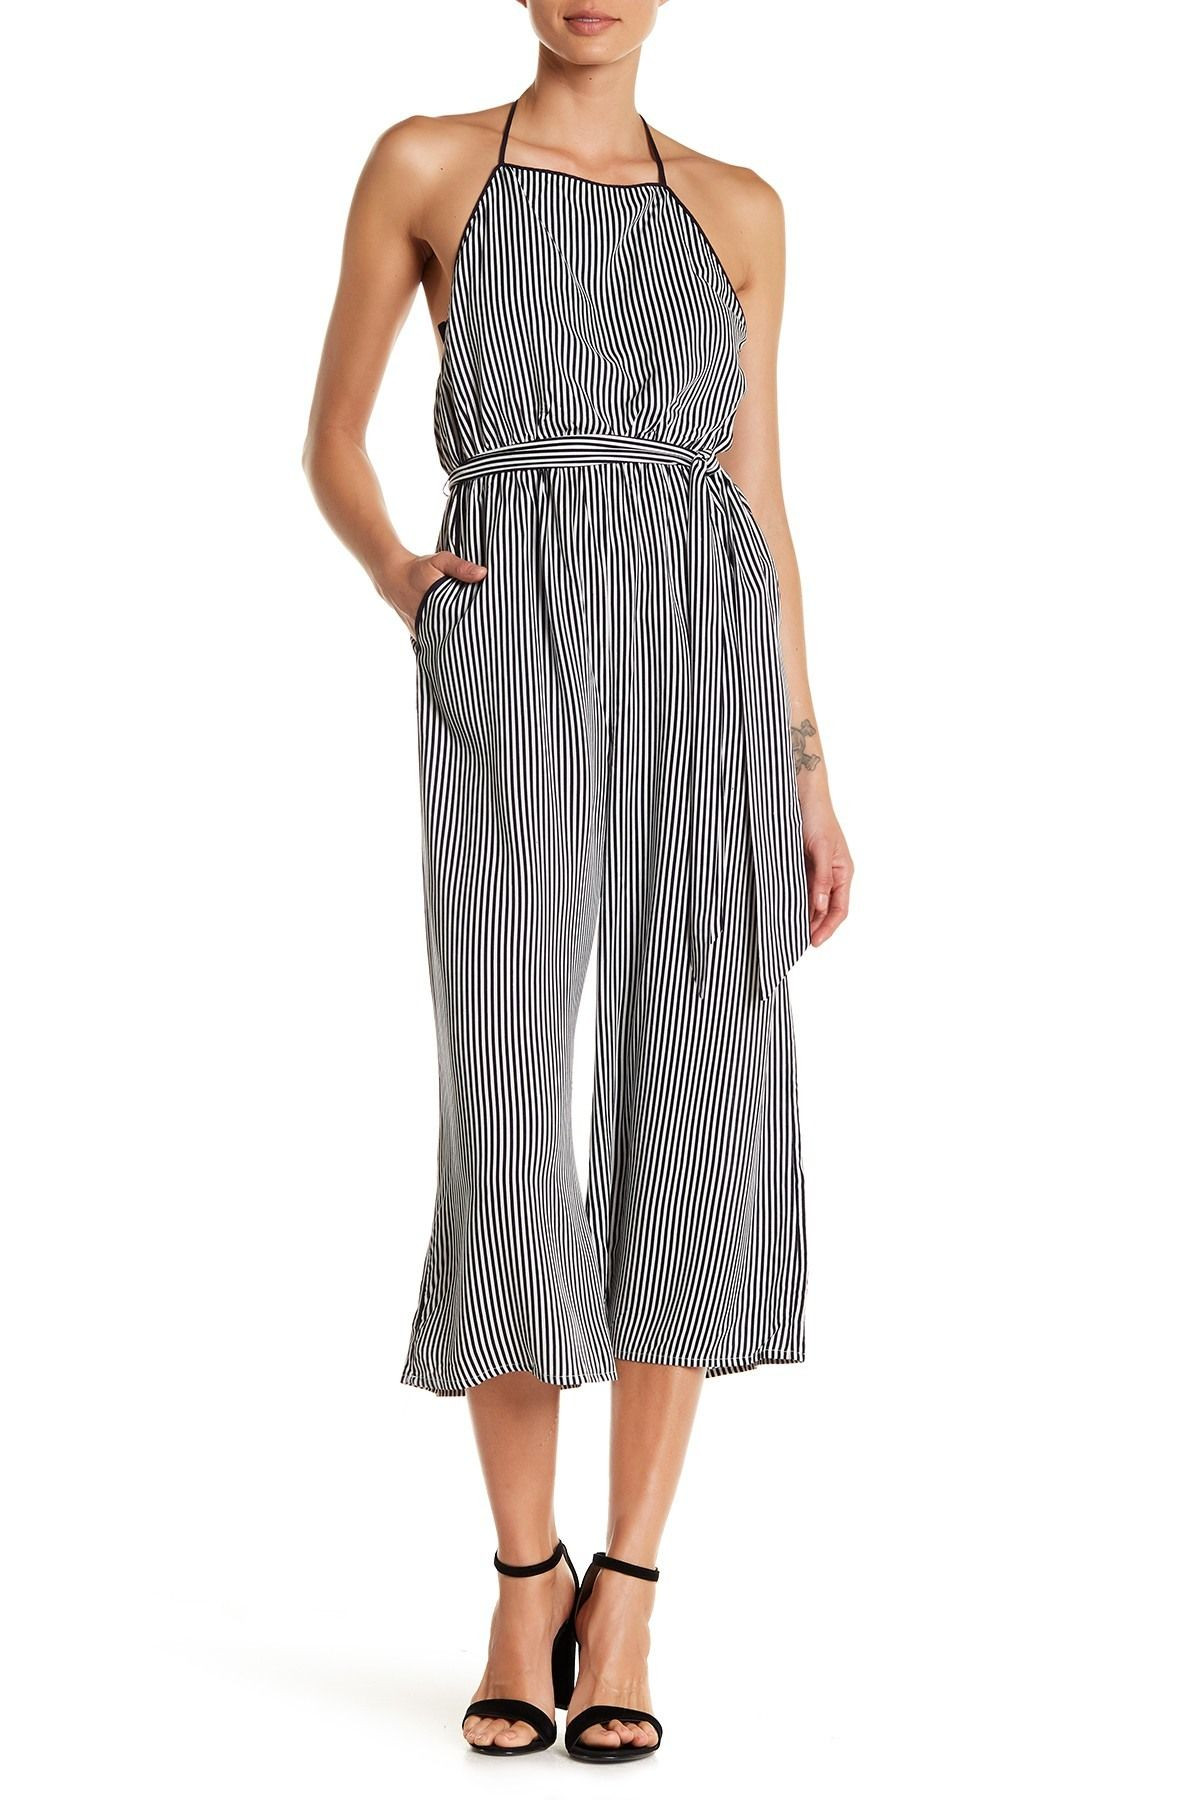 c34c48d1909 AAKAA - Stripe Jumpsuit. Free Shipping on orders over  100.